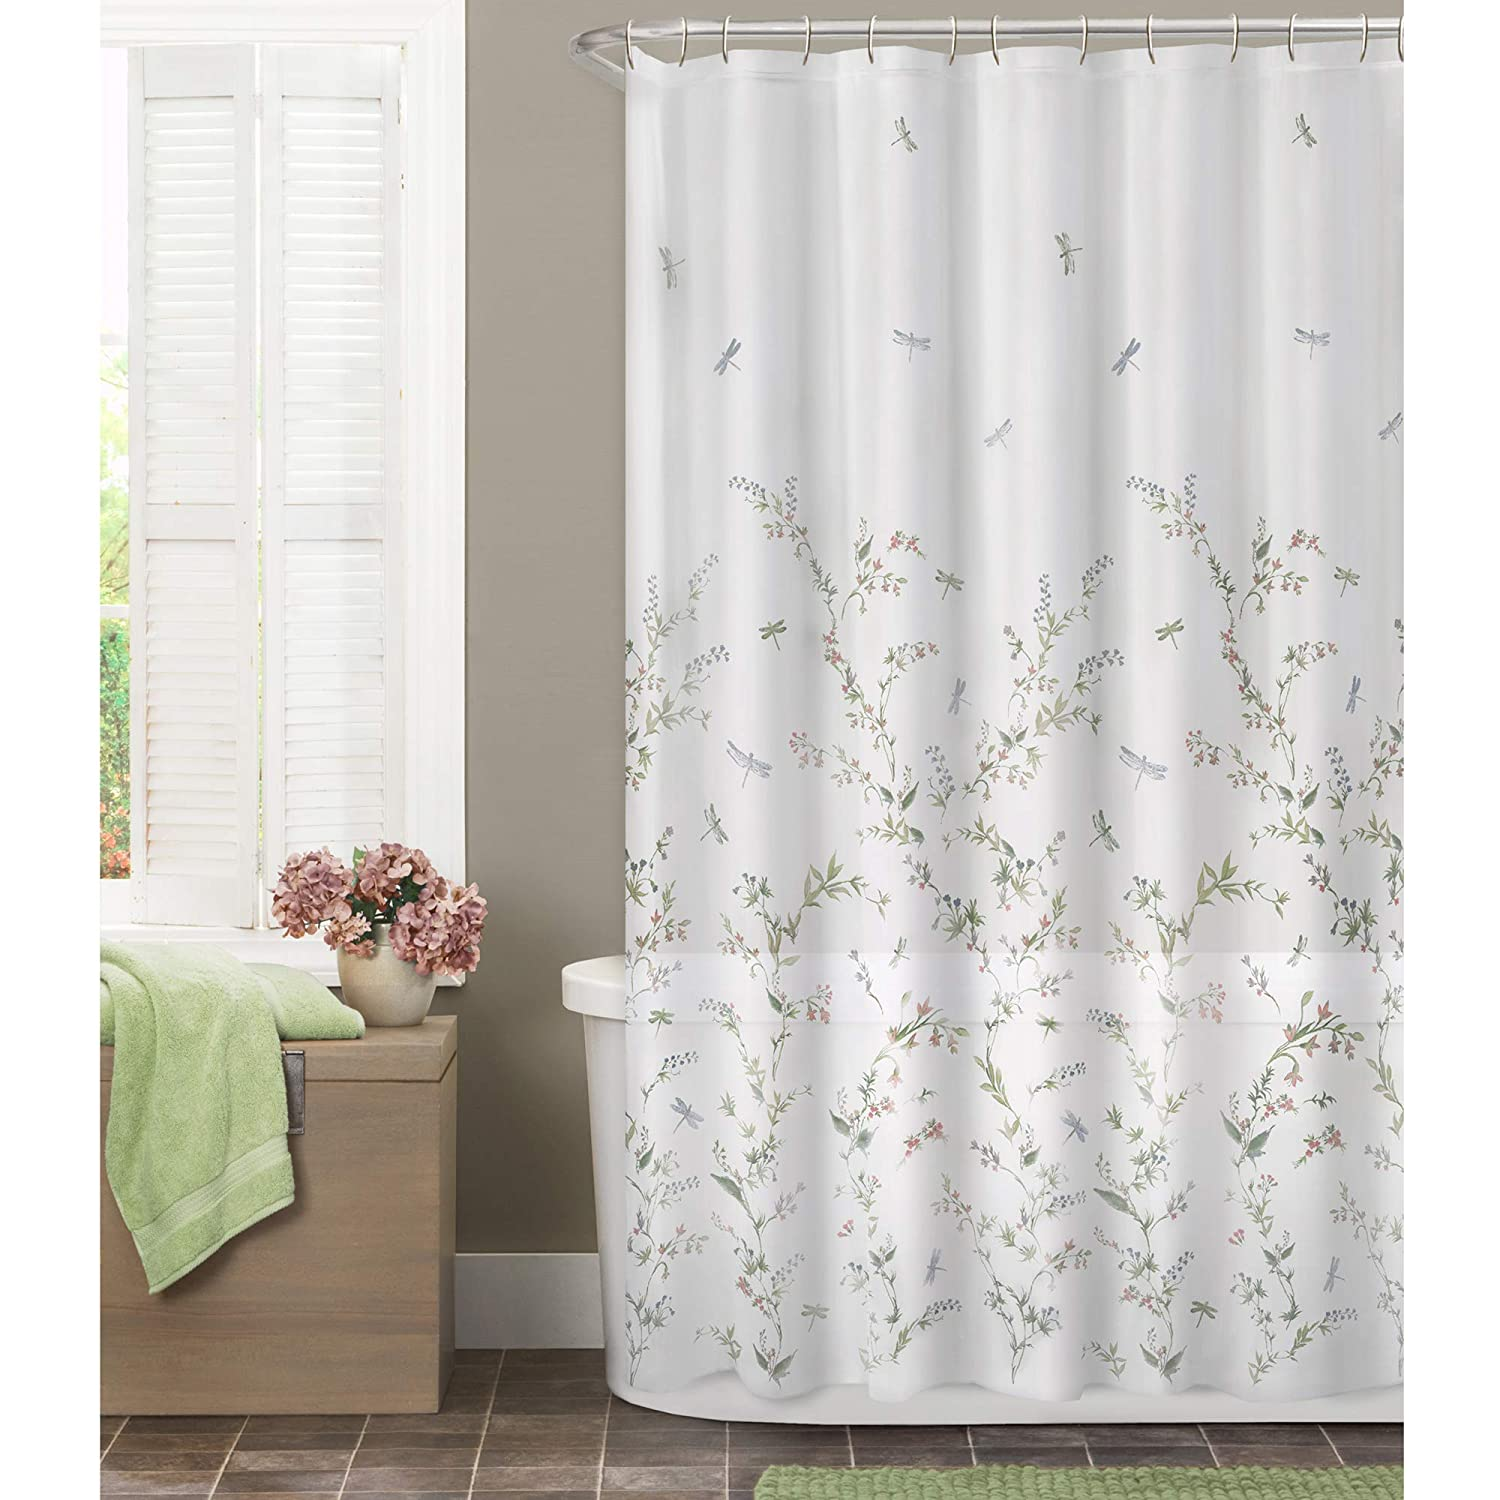 MAYTEX Dragonfly Garden Semi Sheer Fabric Shower Curtain 7065501